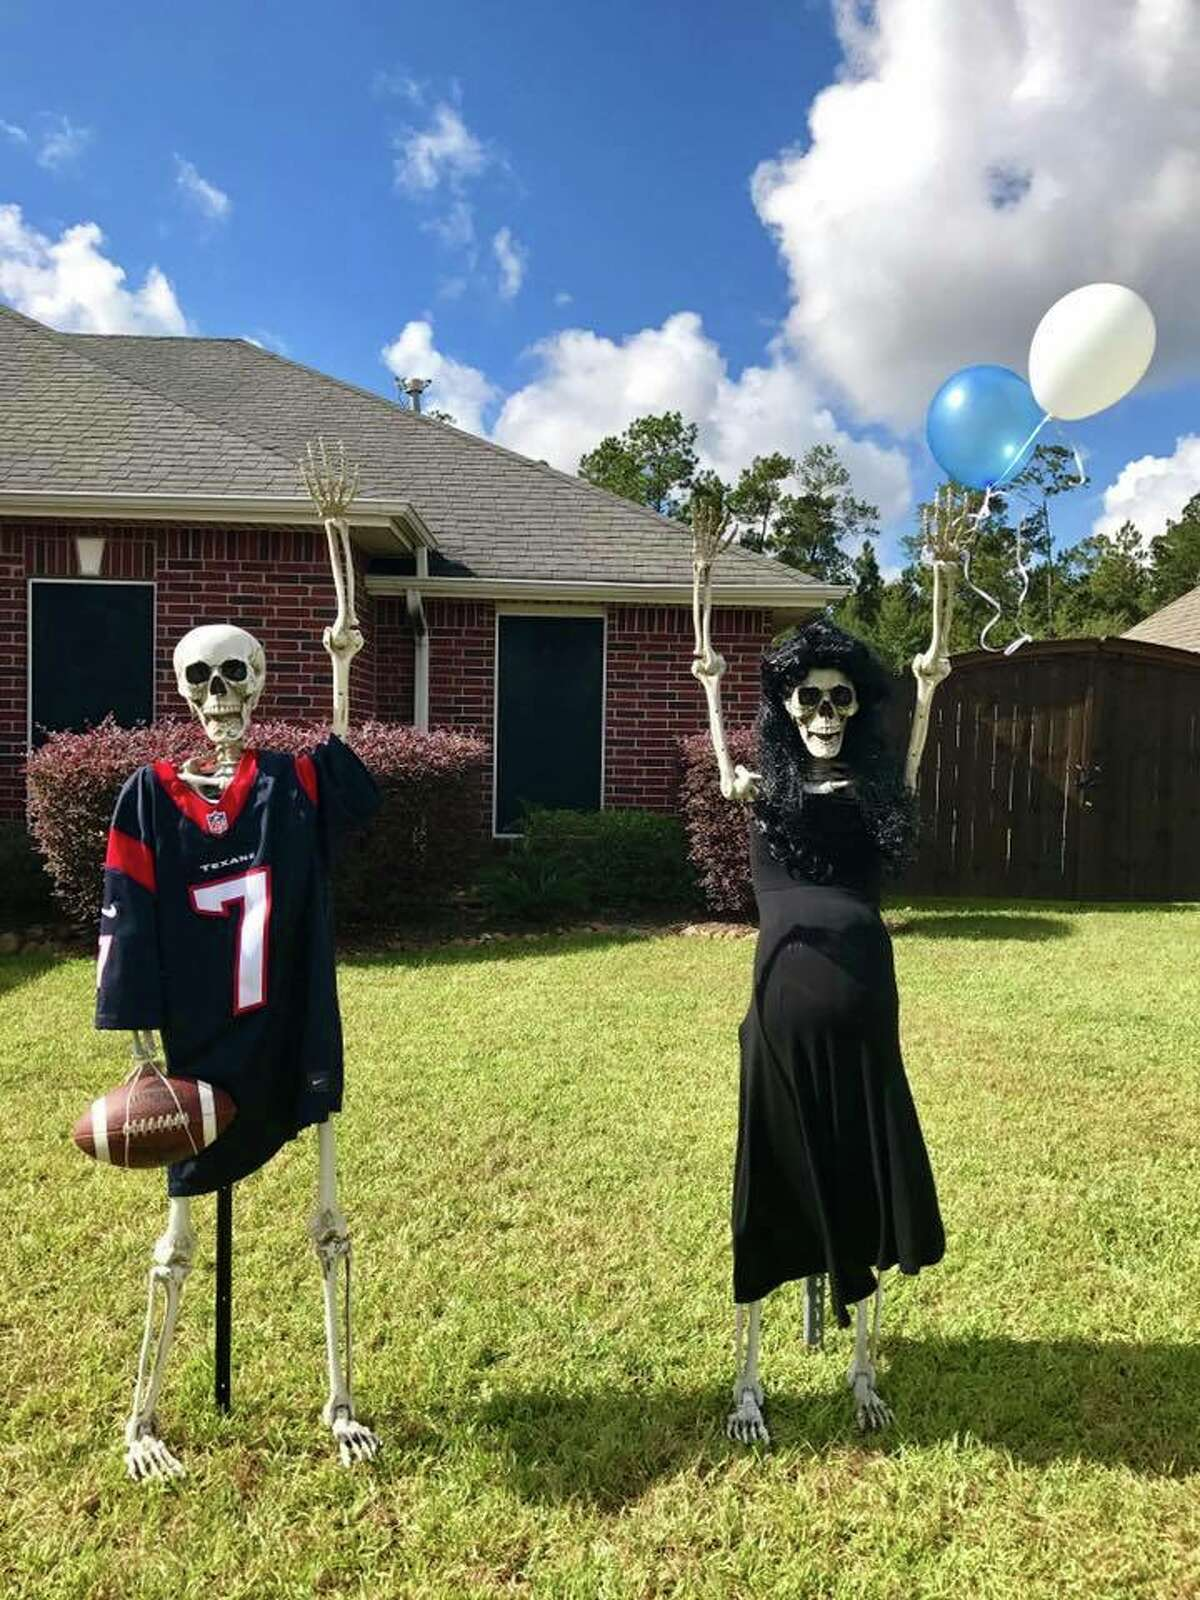 The 'Keeping Up With The Bones' Facebook page tracks goings on of the Bonses, a skeleton family created by Lumberton resident Amy B. Moses. Each day, Moses changes the display to show the family doing different things, like yoga poses, playing Twister and starting a family of their own.